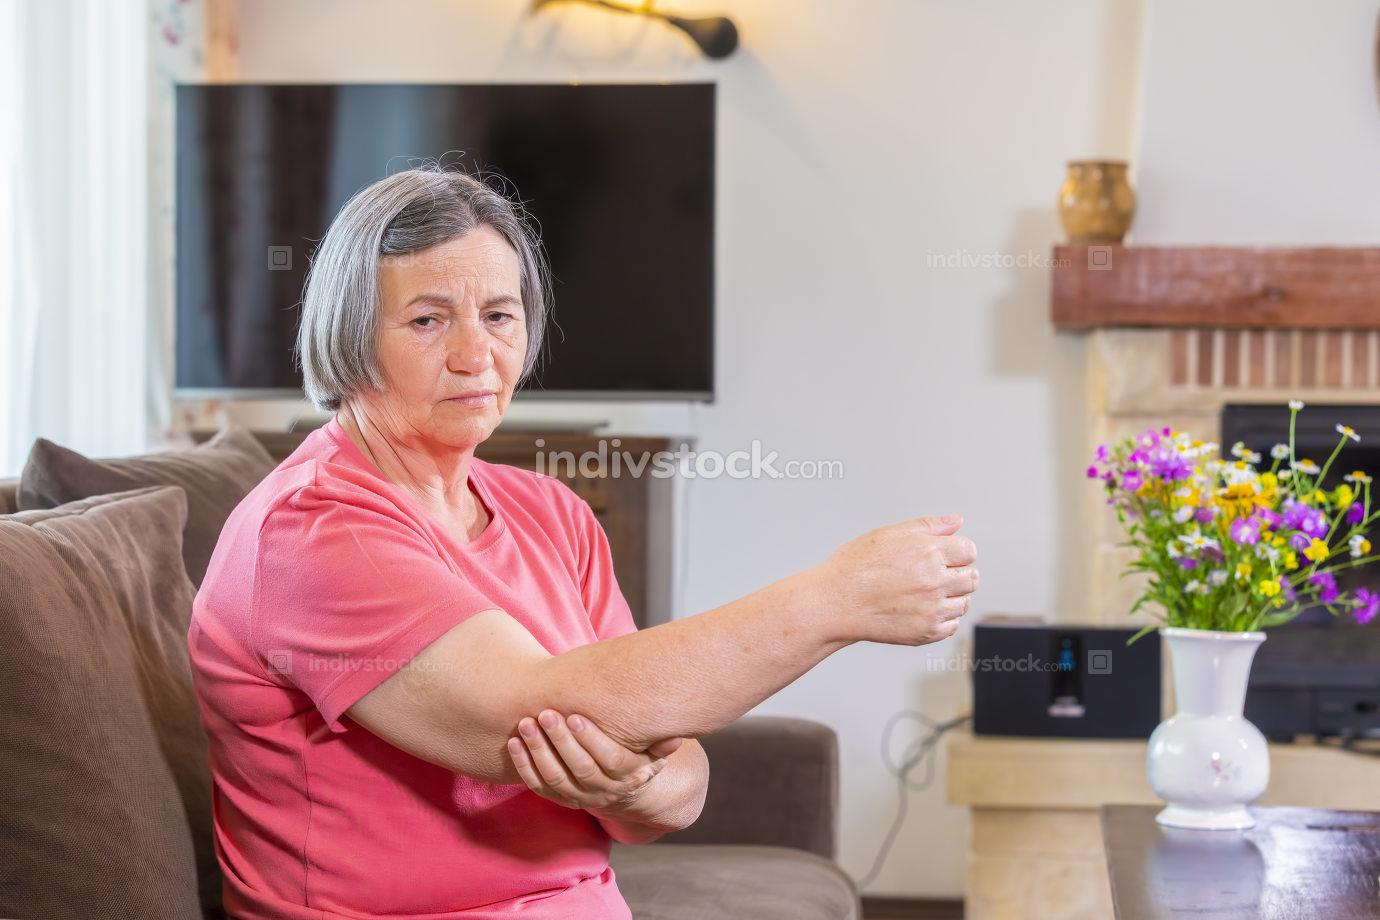 Elbow pain in an hand's elderly person